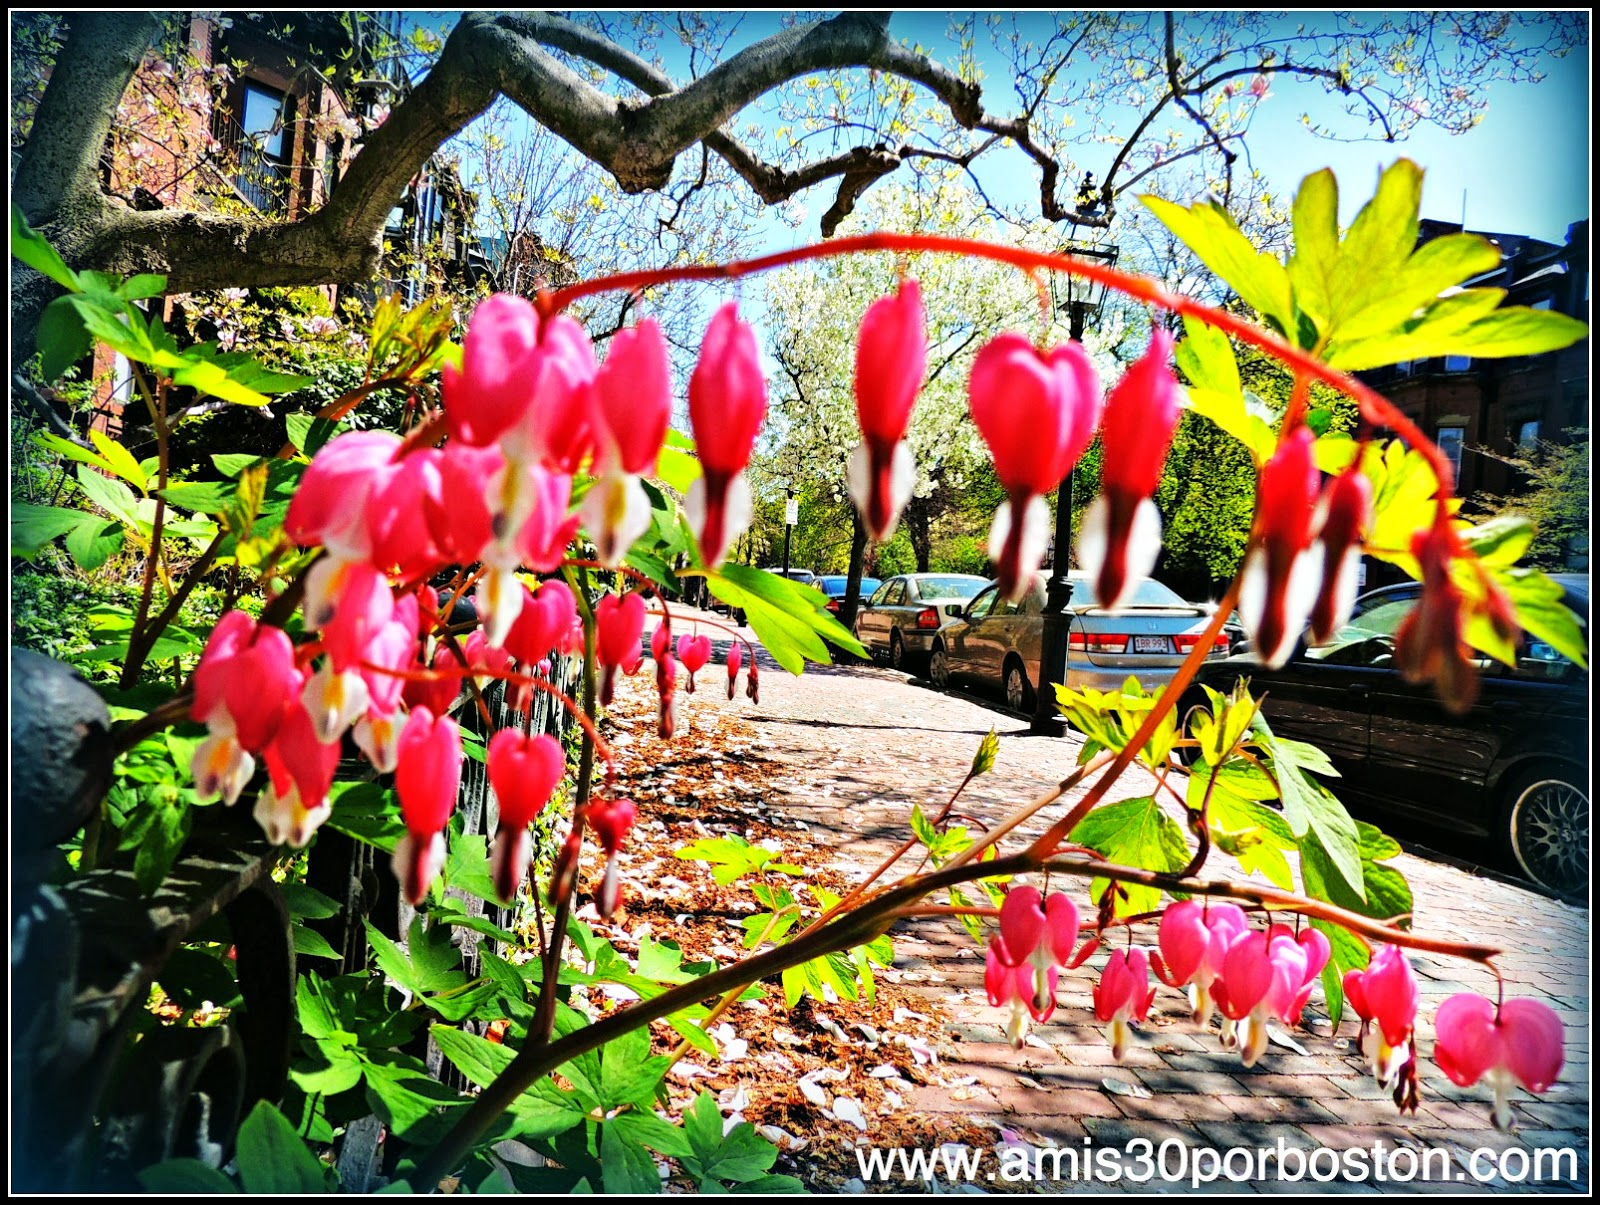 Primavera 2014: Bleeding Heart